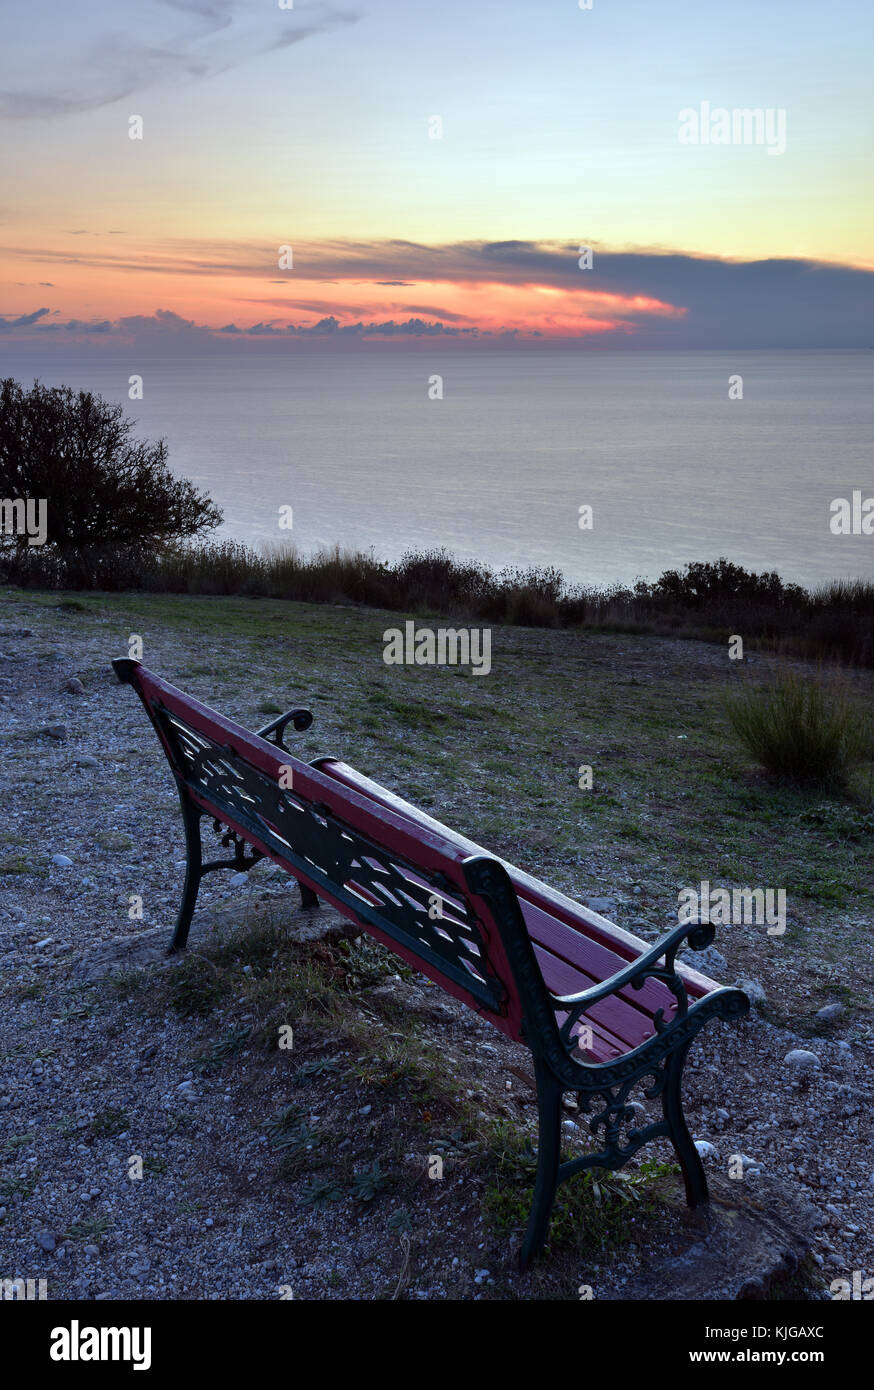 a cast iron an wooden bench on the cliiftop at Paliokastitsa on the Greek island of Corfu at sunset with a calm - Stock Image